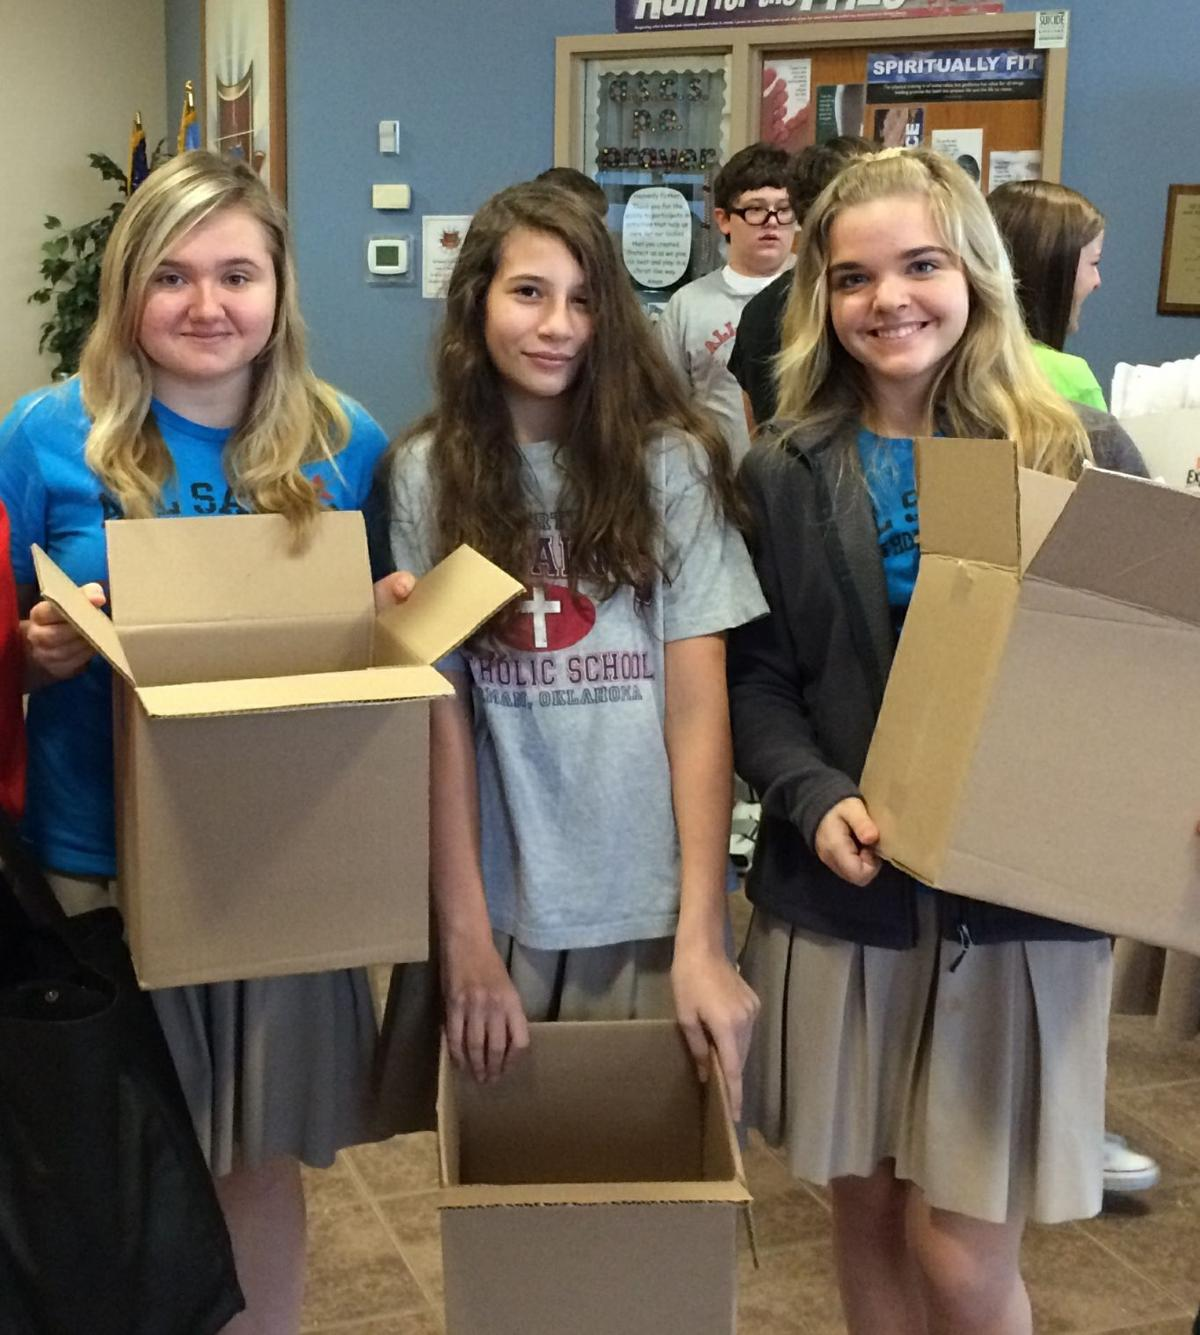 Students package gifts for children of incarcerated parents